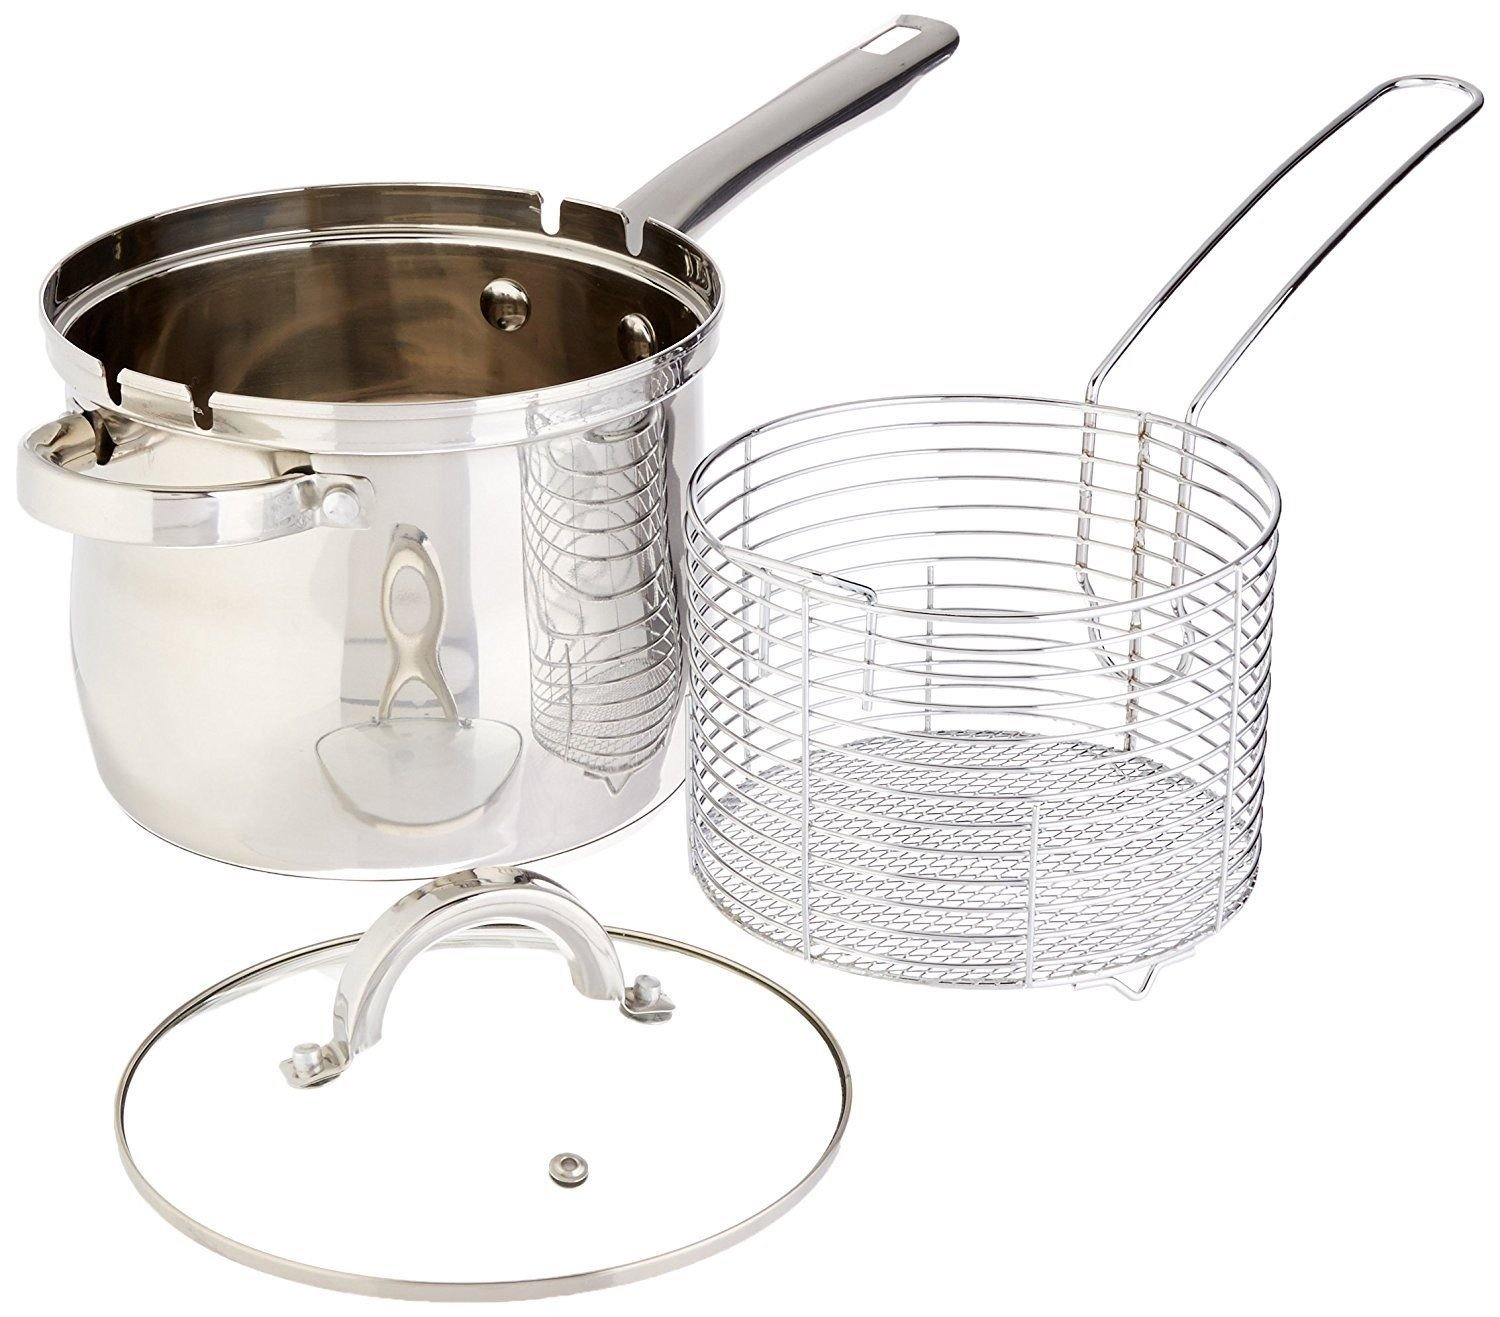 4 QT Stainless Deep Fryer Basket Set - Deep Fryer Kit - Stovetop Deep Fryer With Basket & Glass Lid